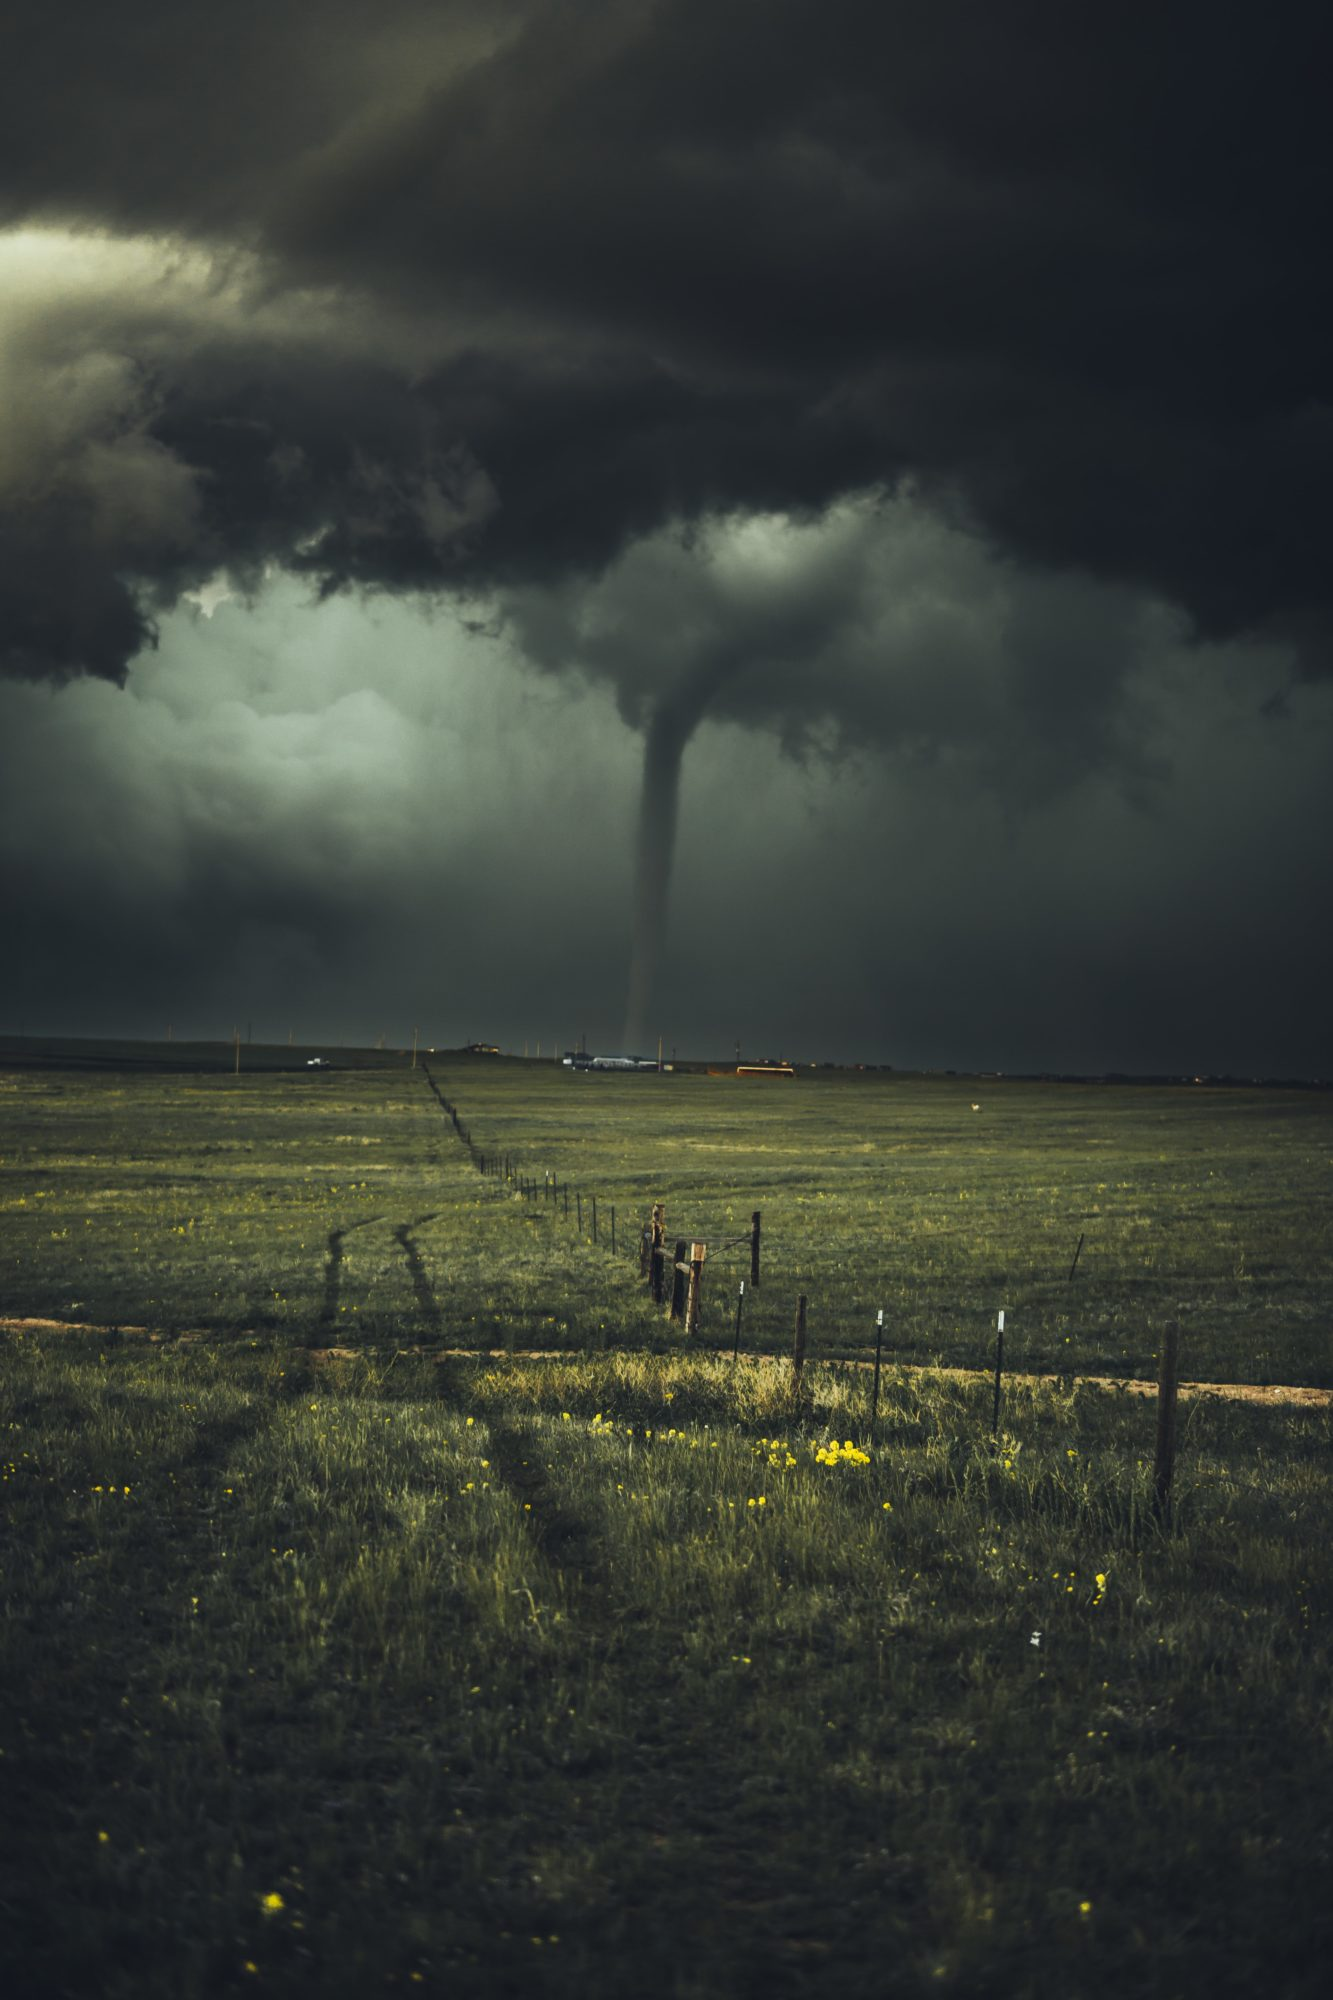 Tornado hitting land in a green field